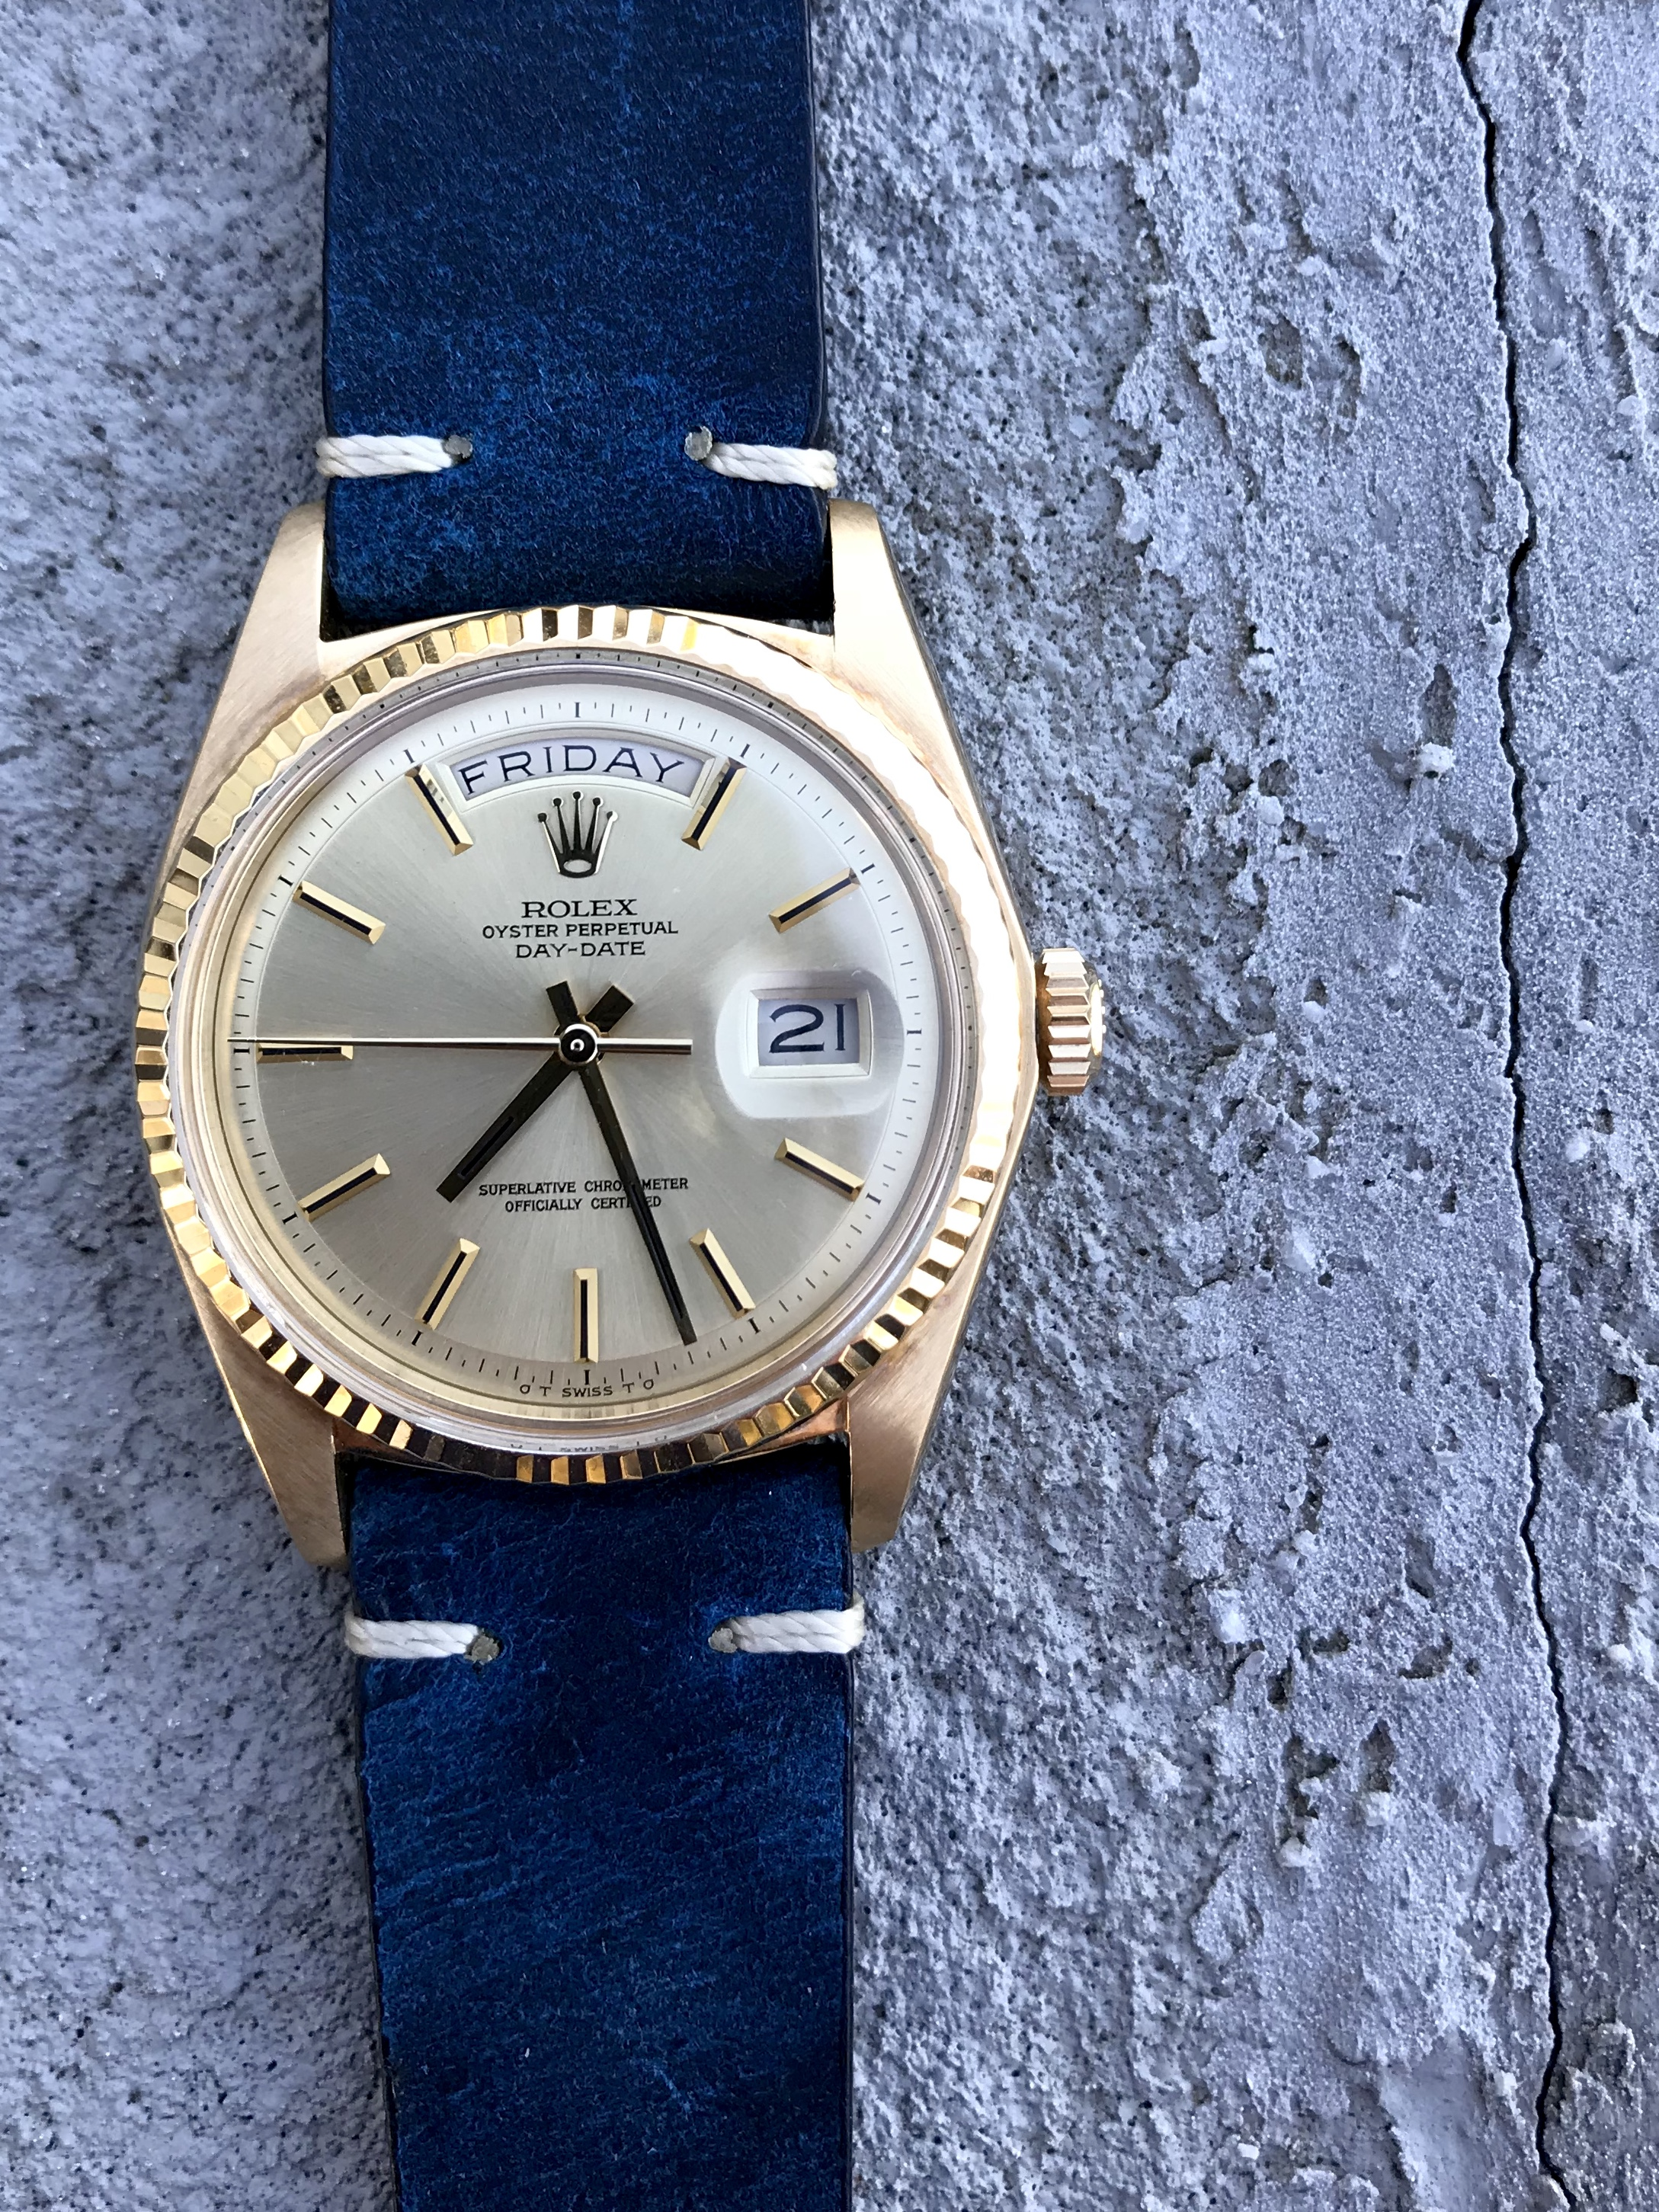 Rolex Day Date 1803 on Colareb Firenze Blue